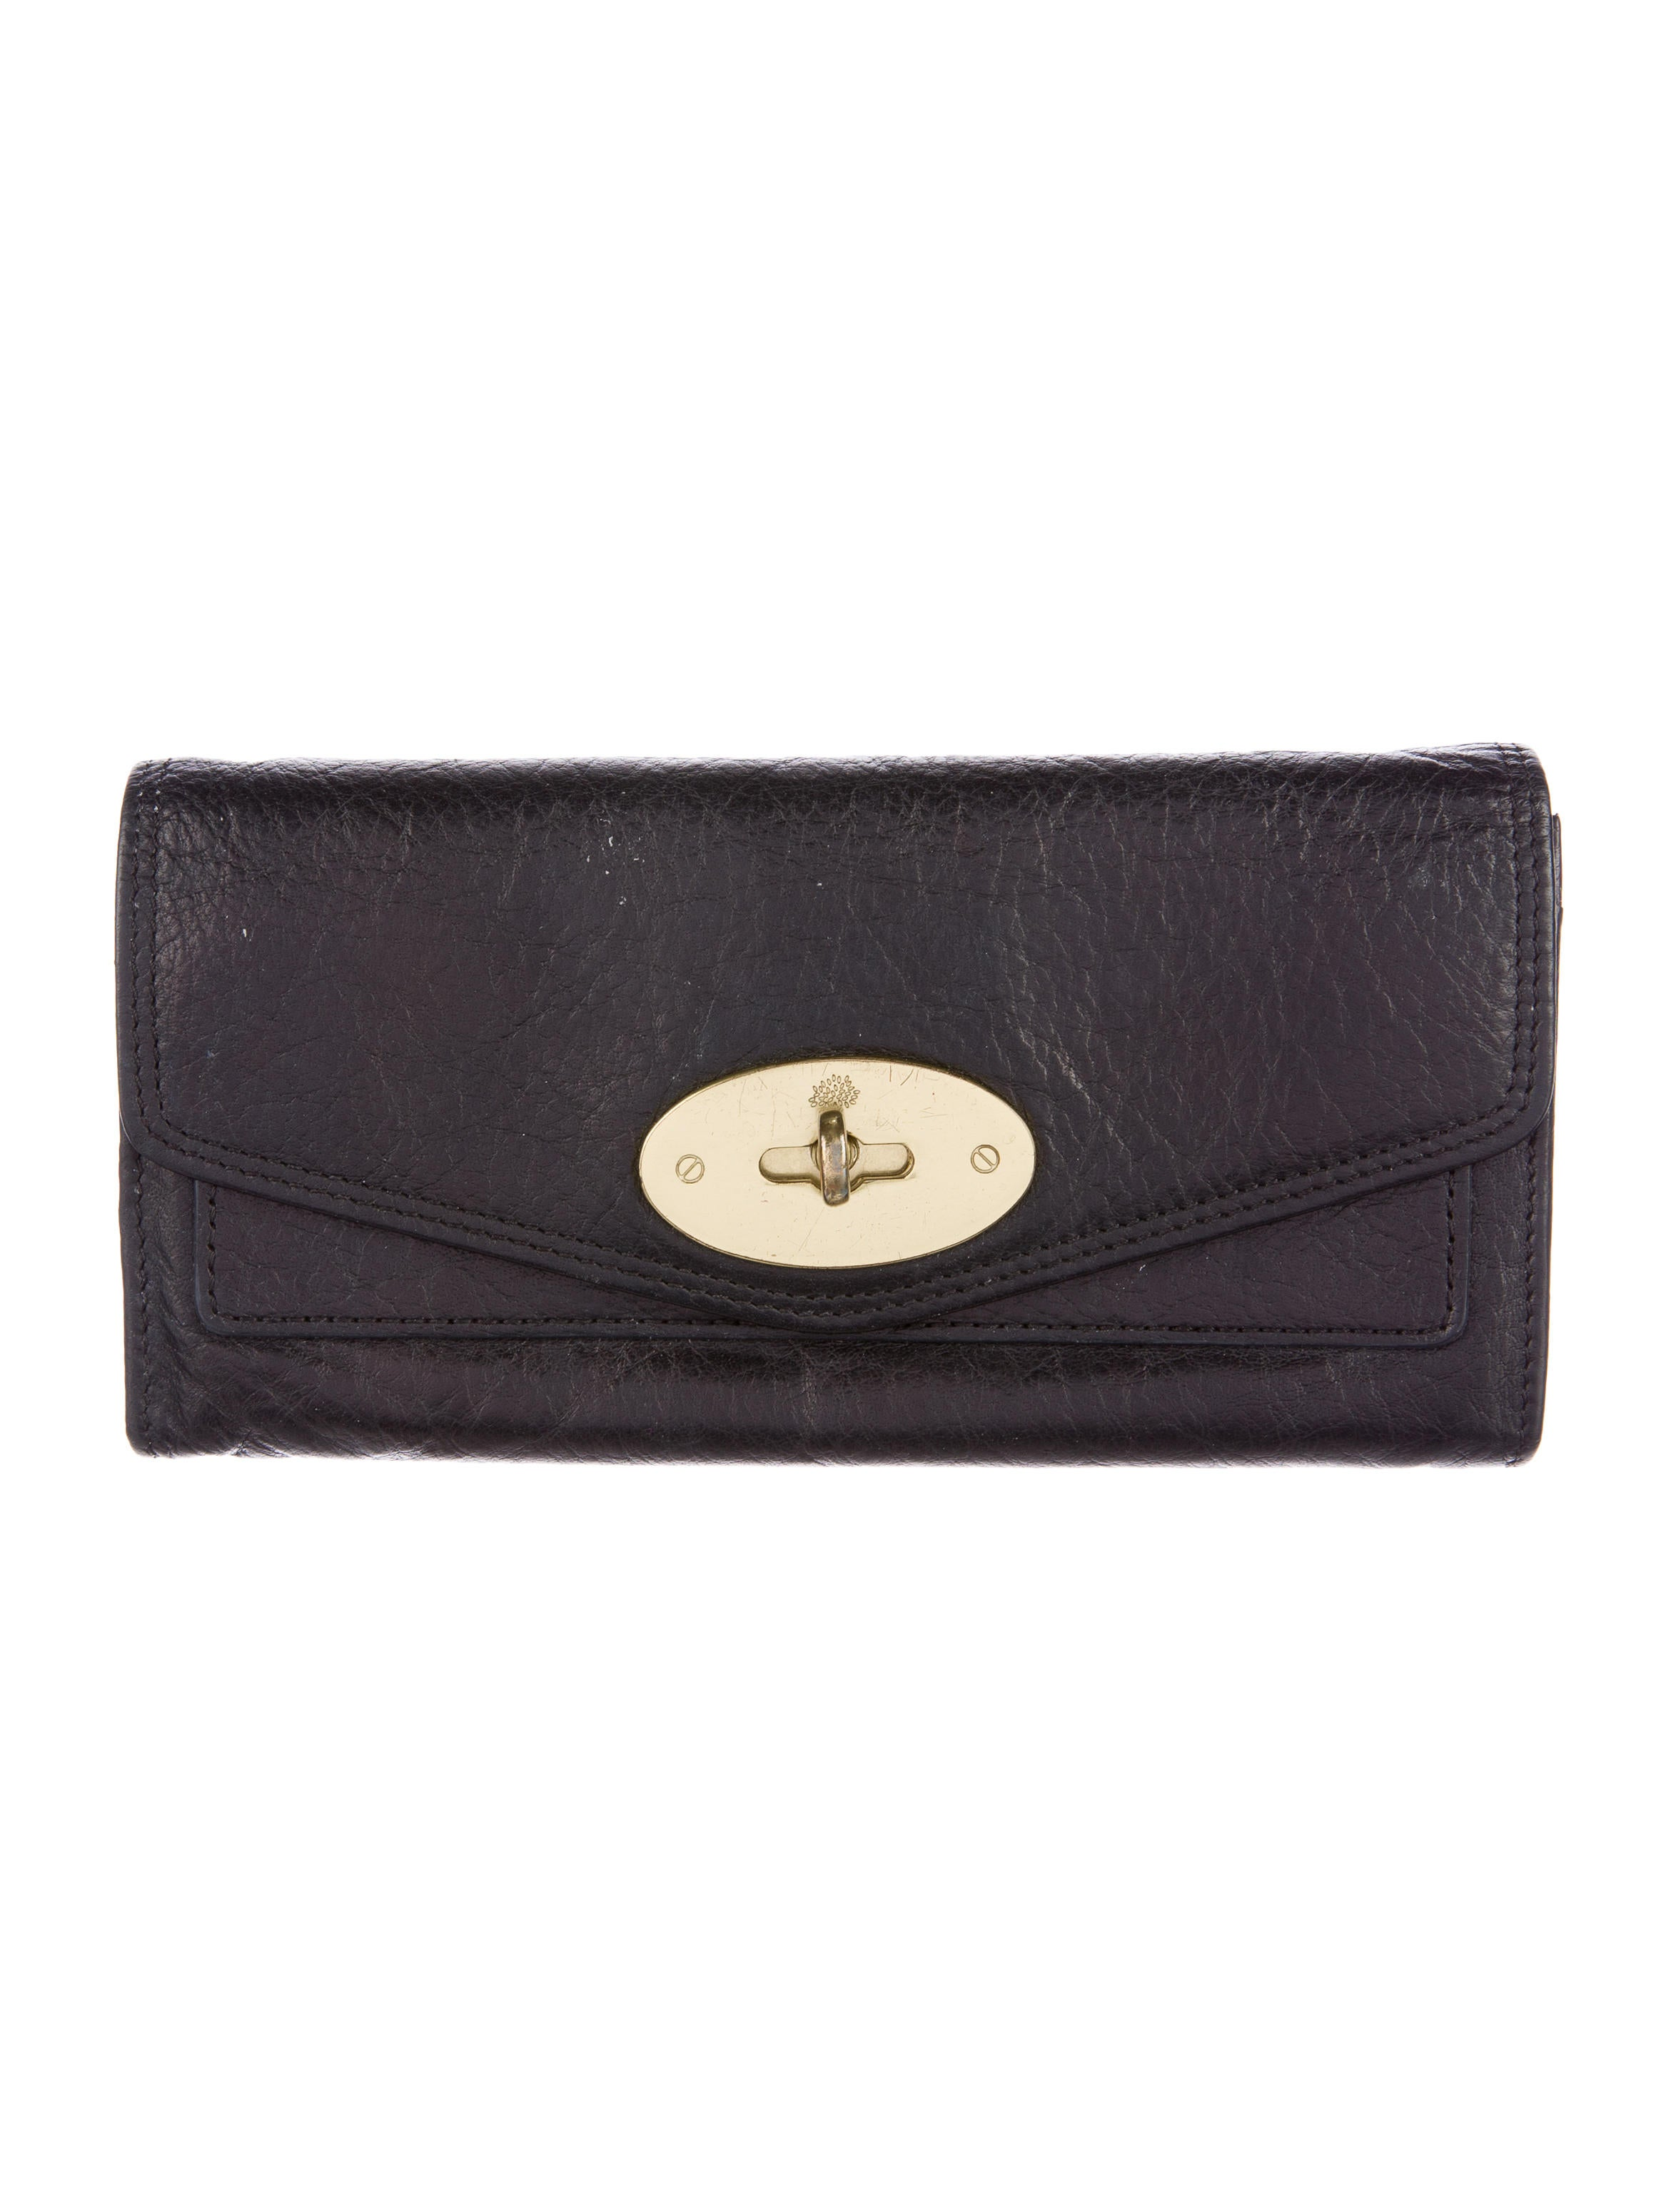 a227cac30699 Mulberry Wallet Womens Sale | Stanford Center for Opportunity Policy ...